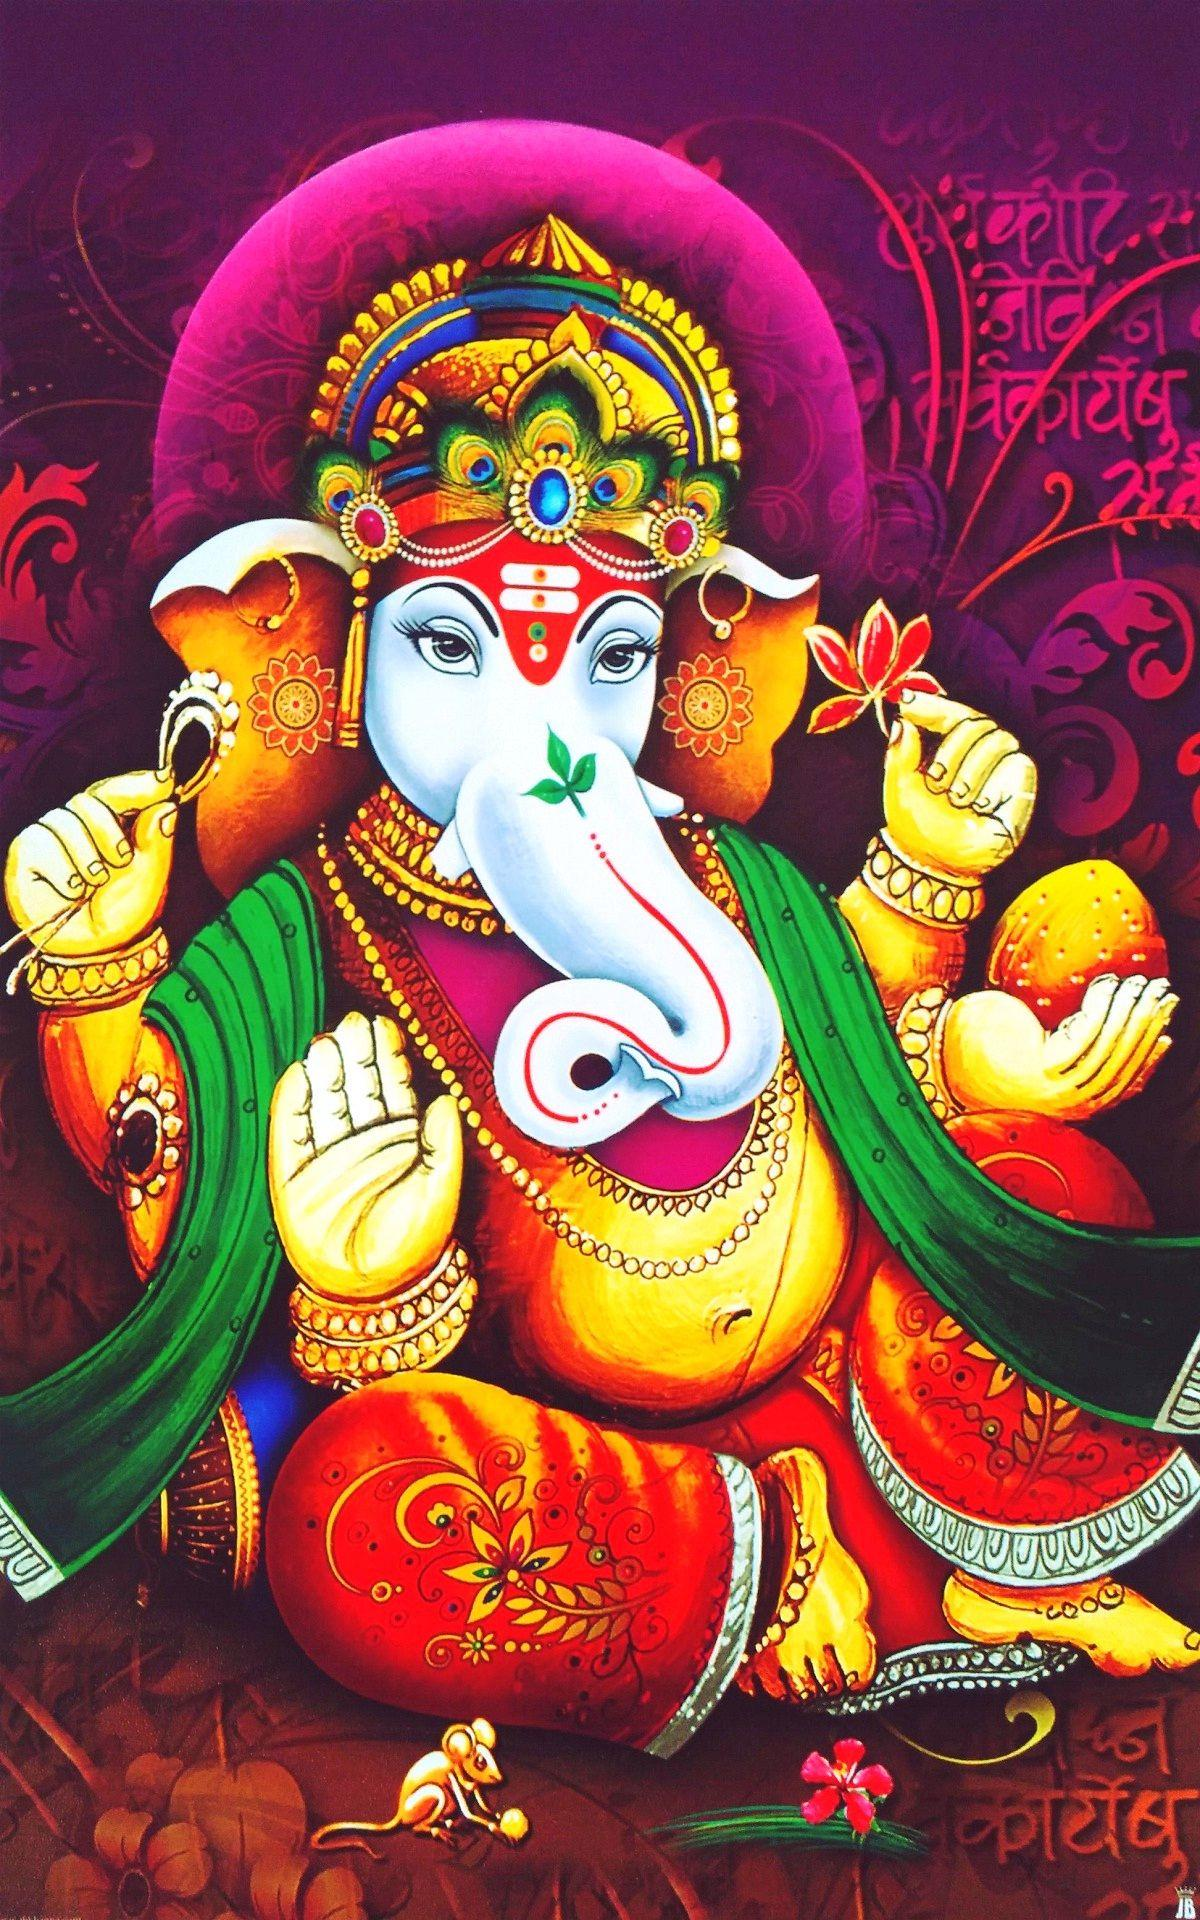 Ganesh best new HD mobile background wallpapers - New hd .